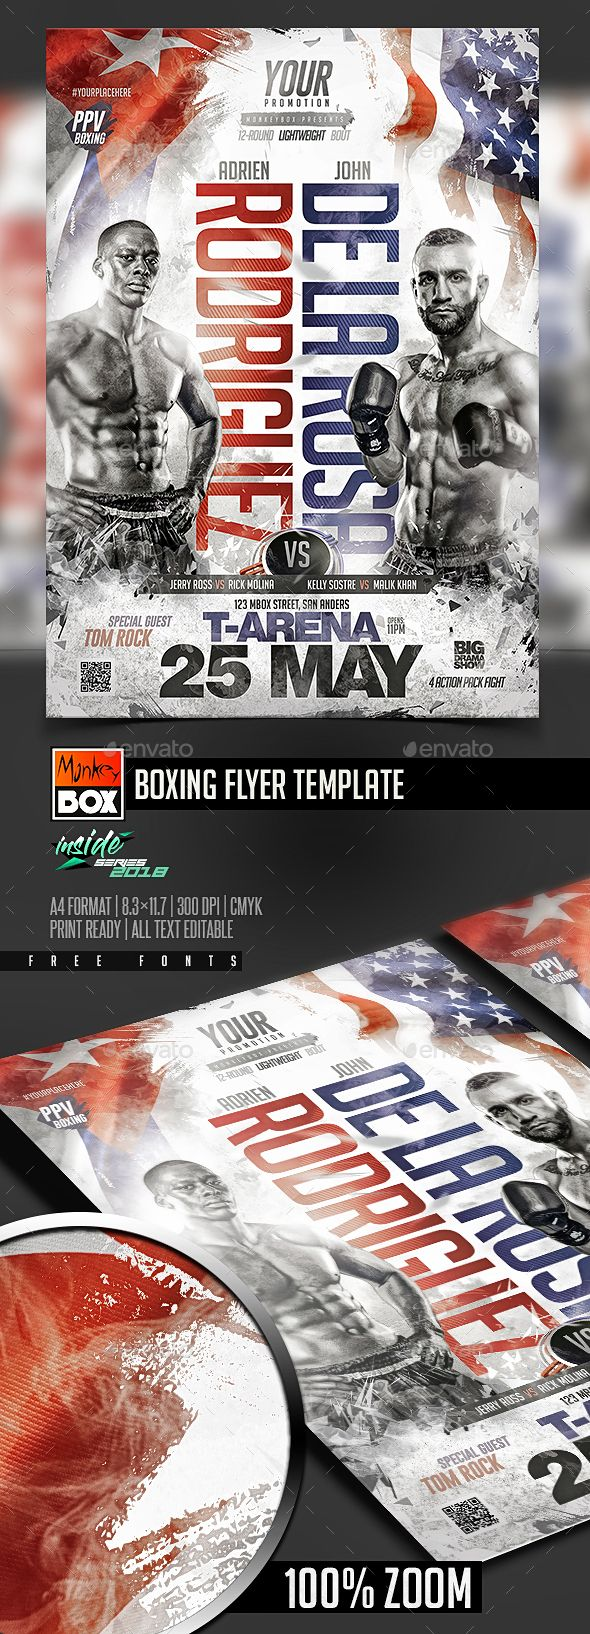 Boxing Flyer Template — PSD fitness boxing